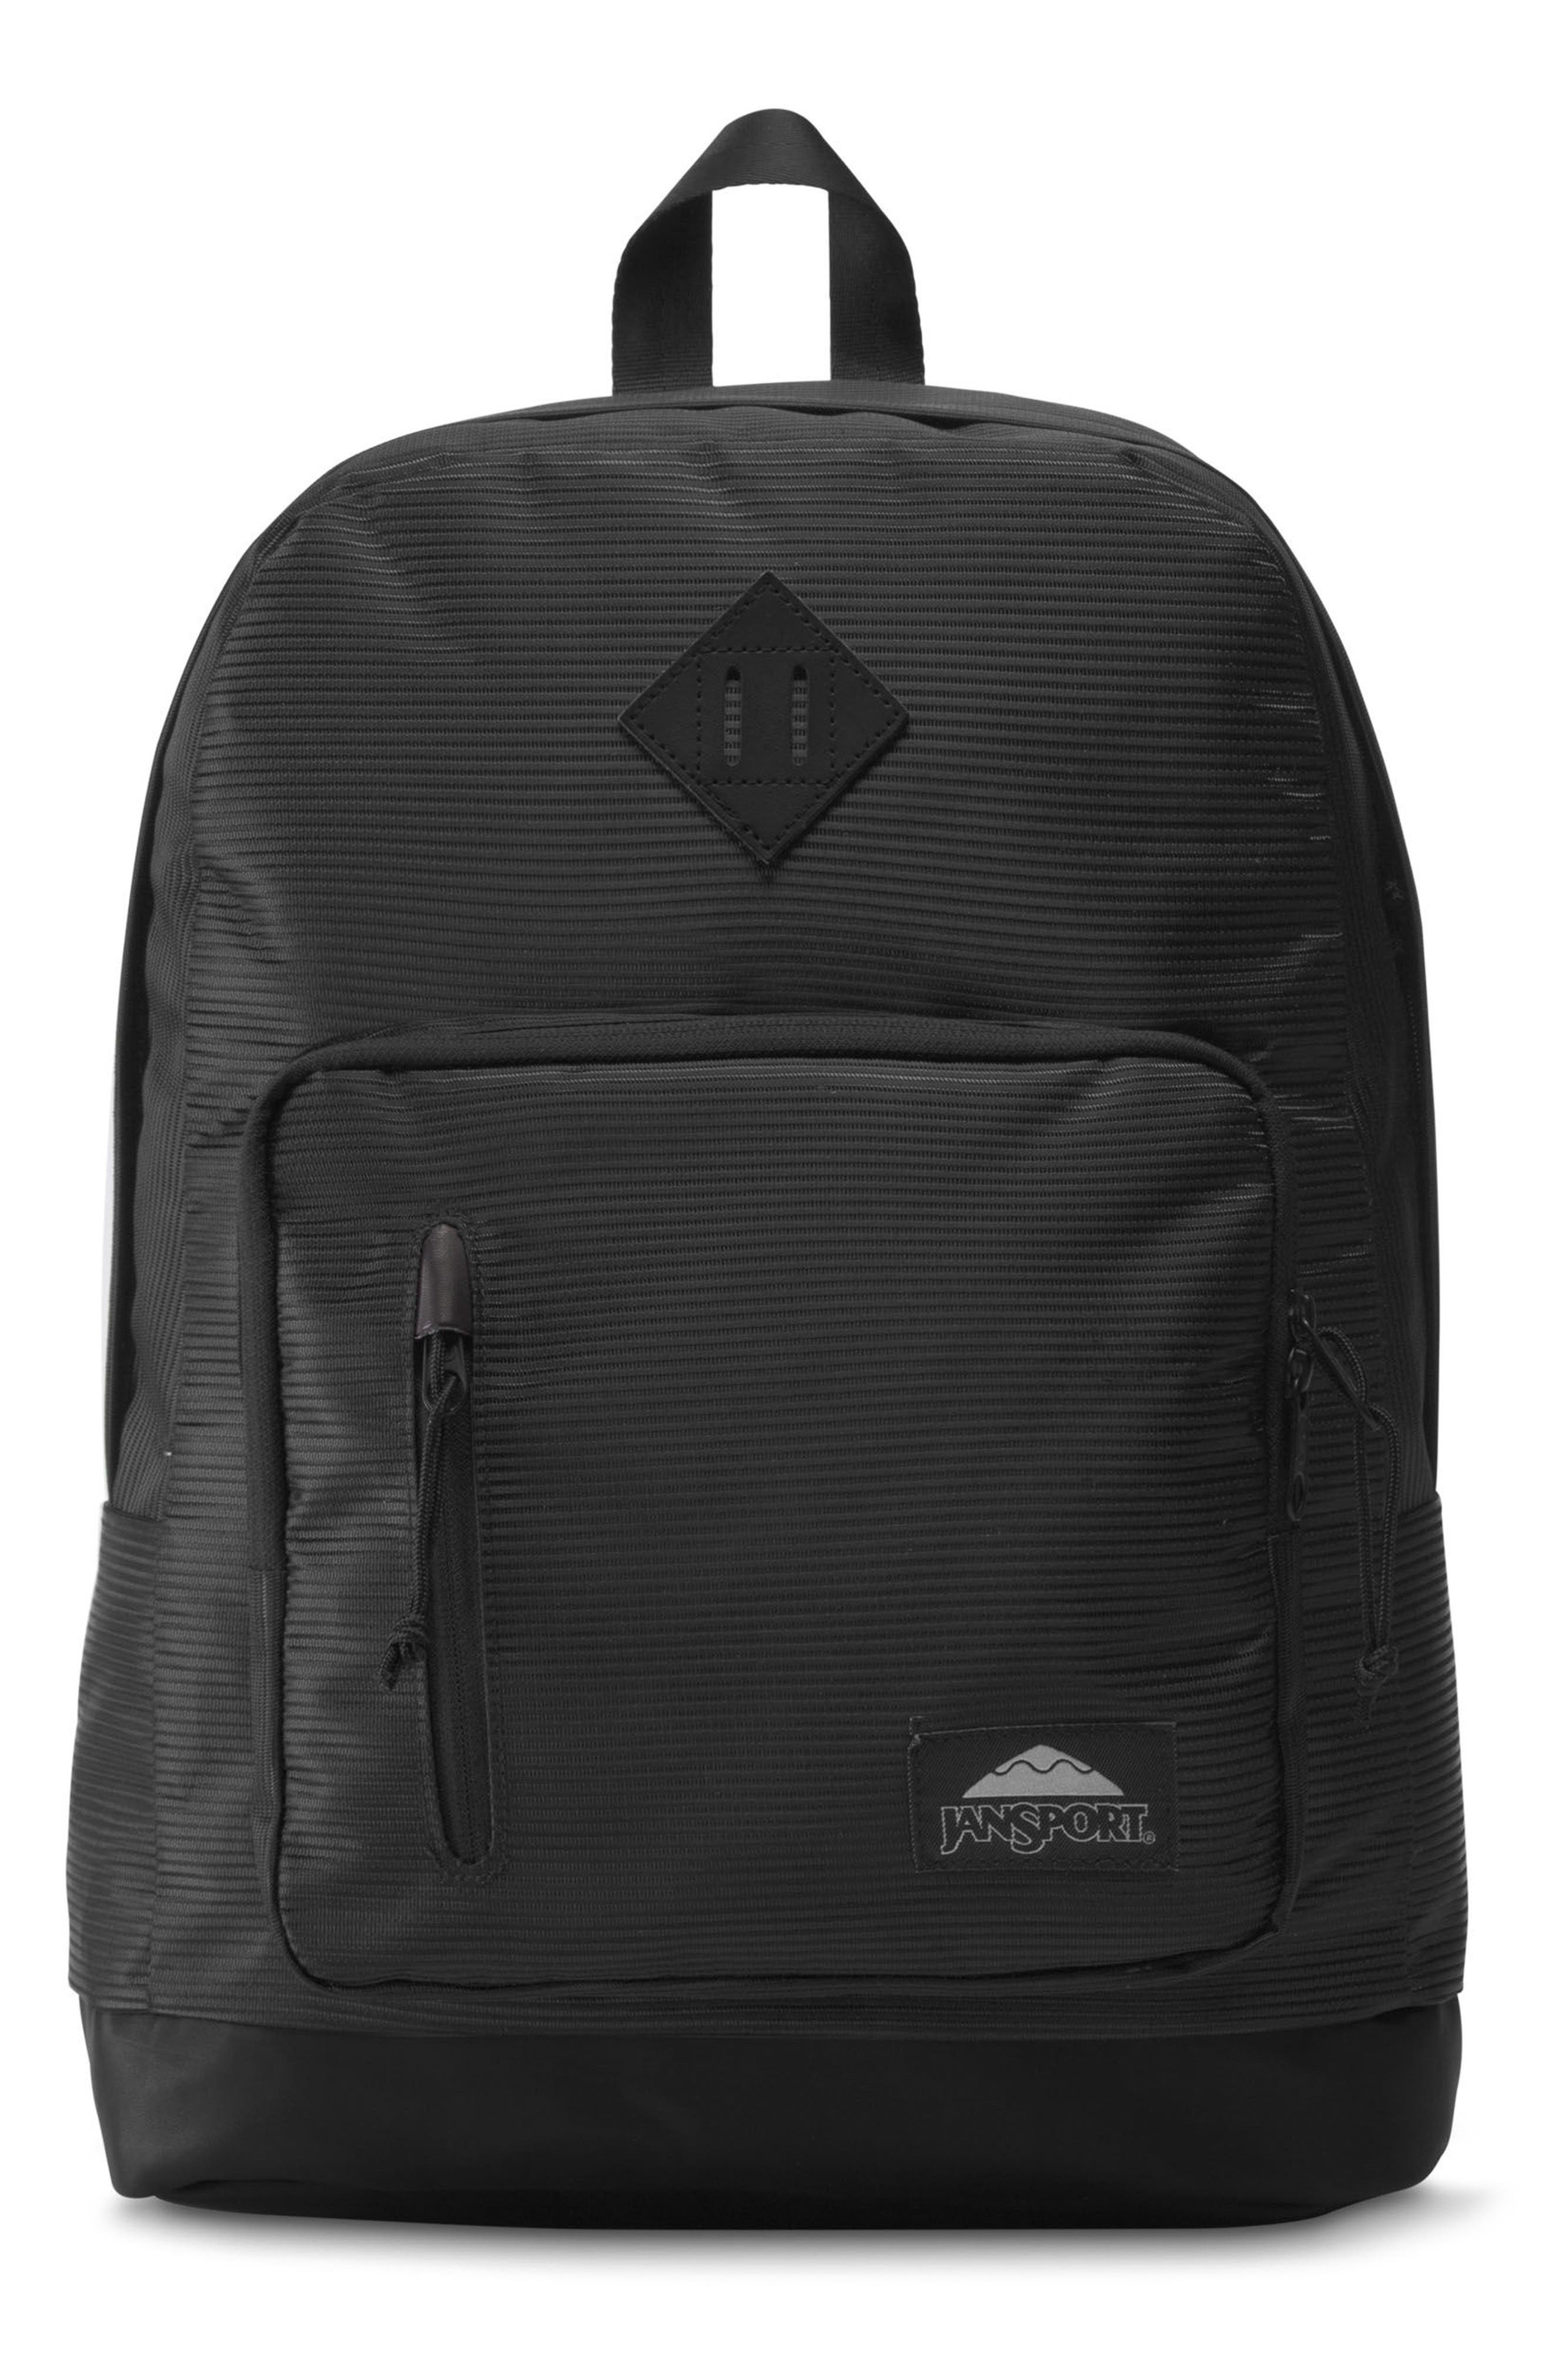 Axiom Backpack,                         Main,                         color, Black Line